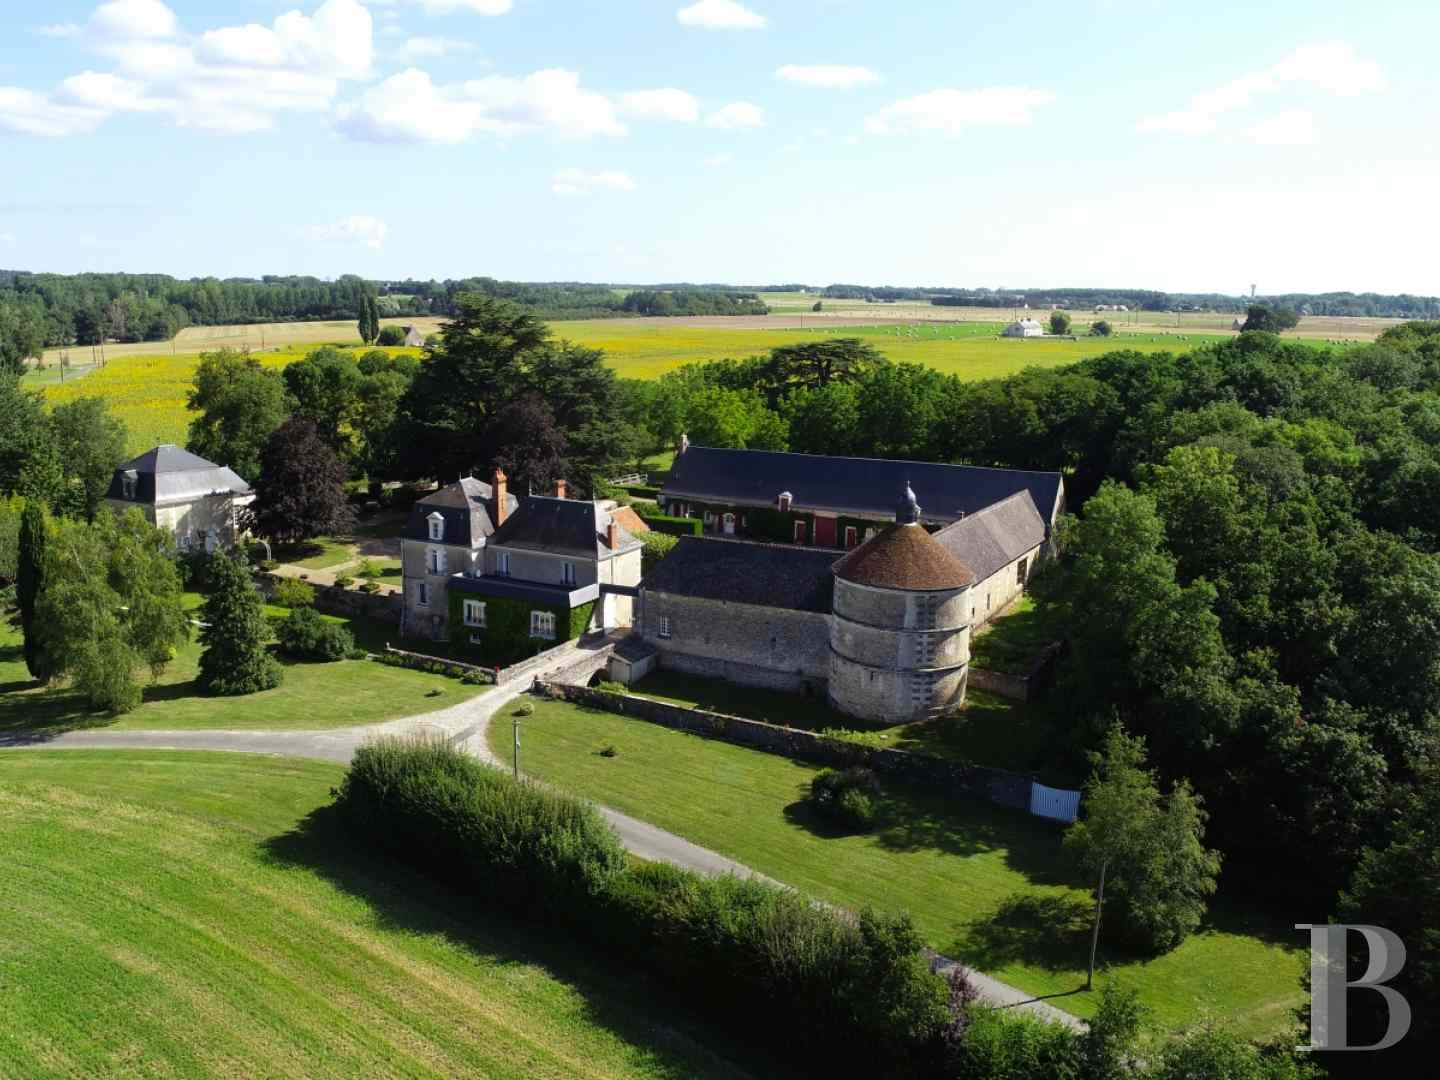 property for sale France center val de loire hunting grounds - 2 zoom